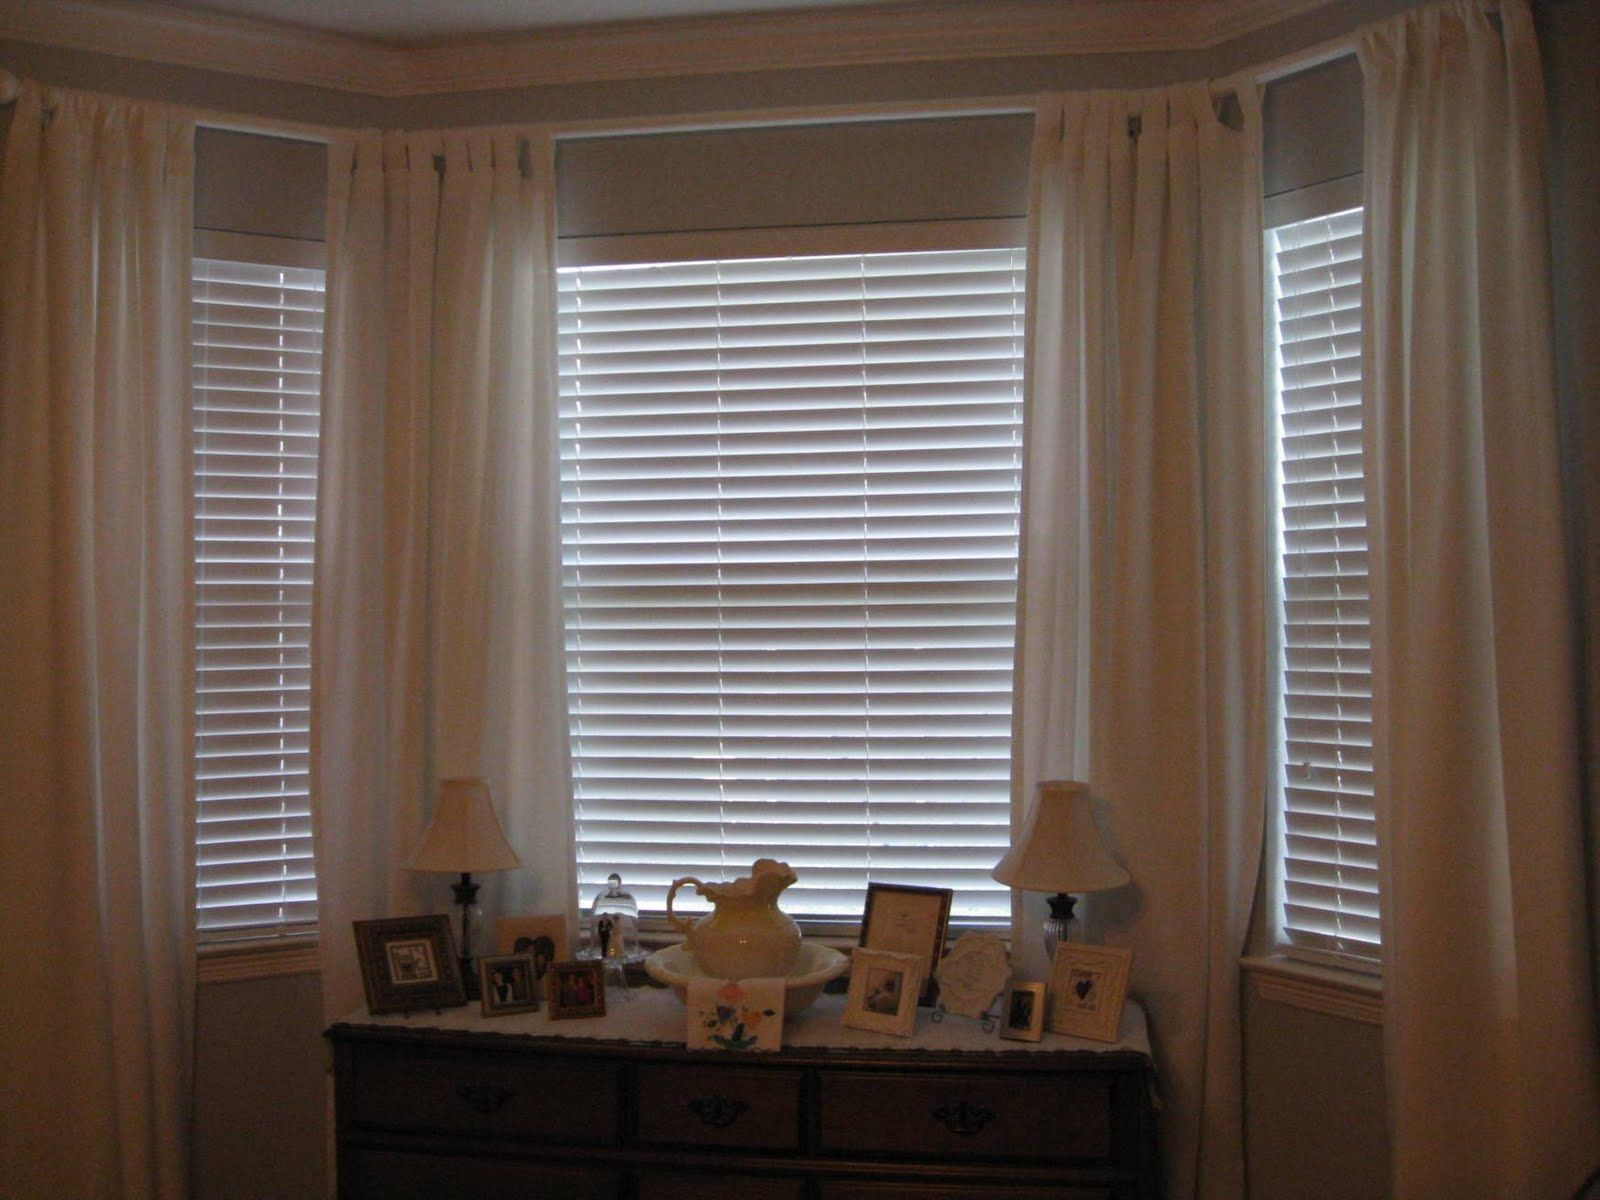 How to dress a bay window google search for the home Window treatments for bay window in living room